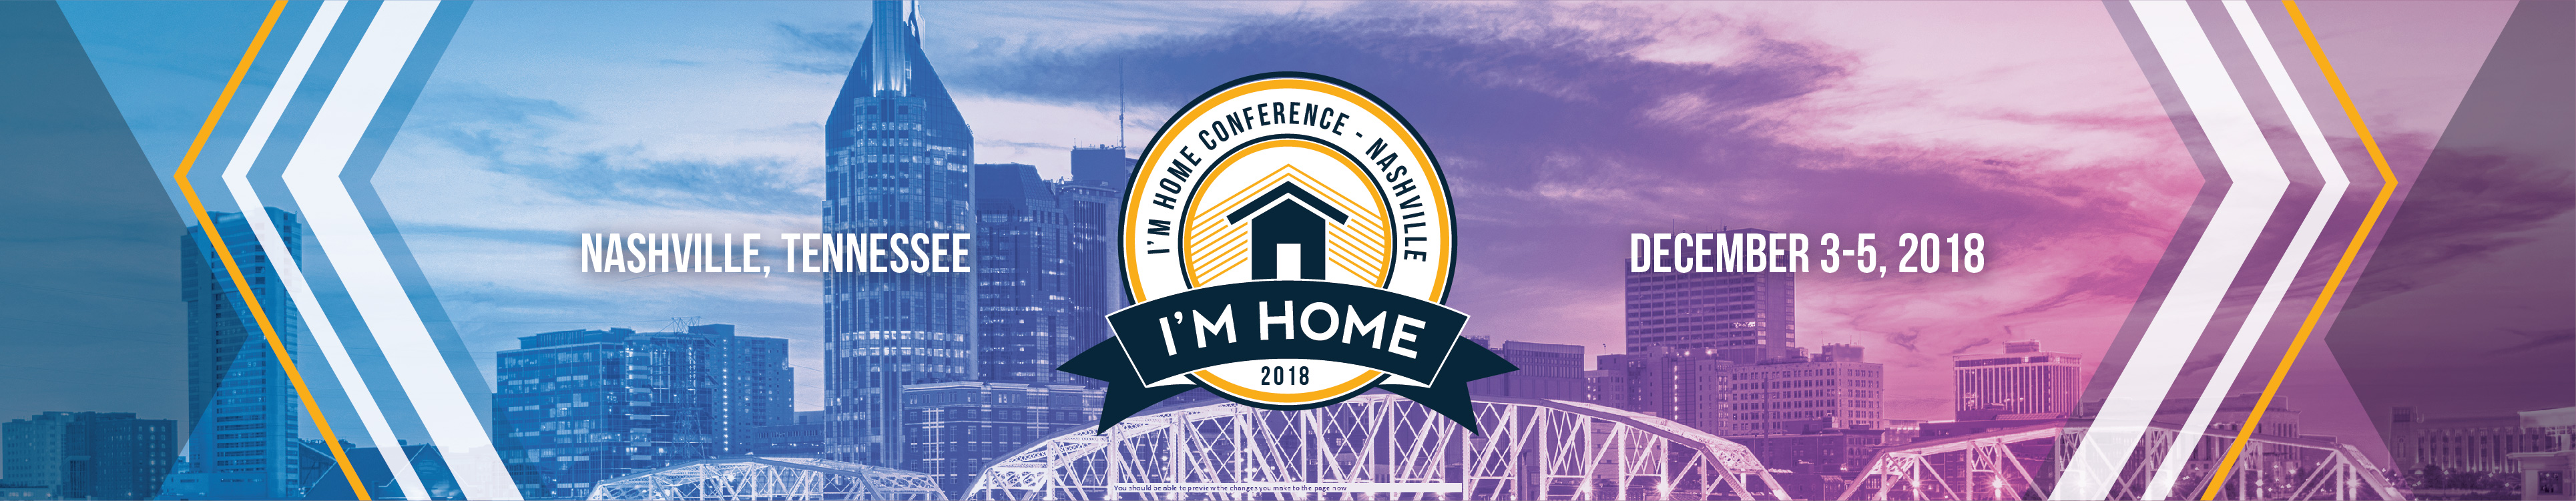 2018 I'M HOME Conference